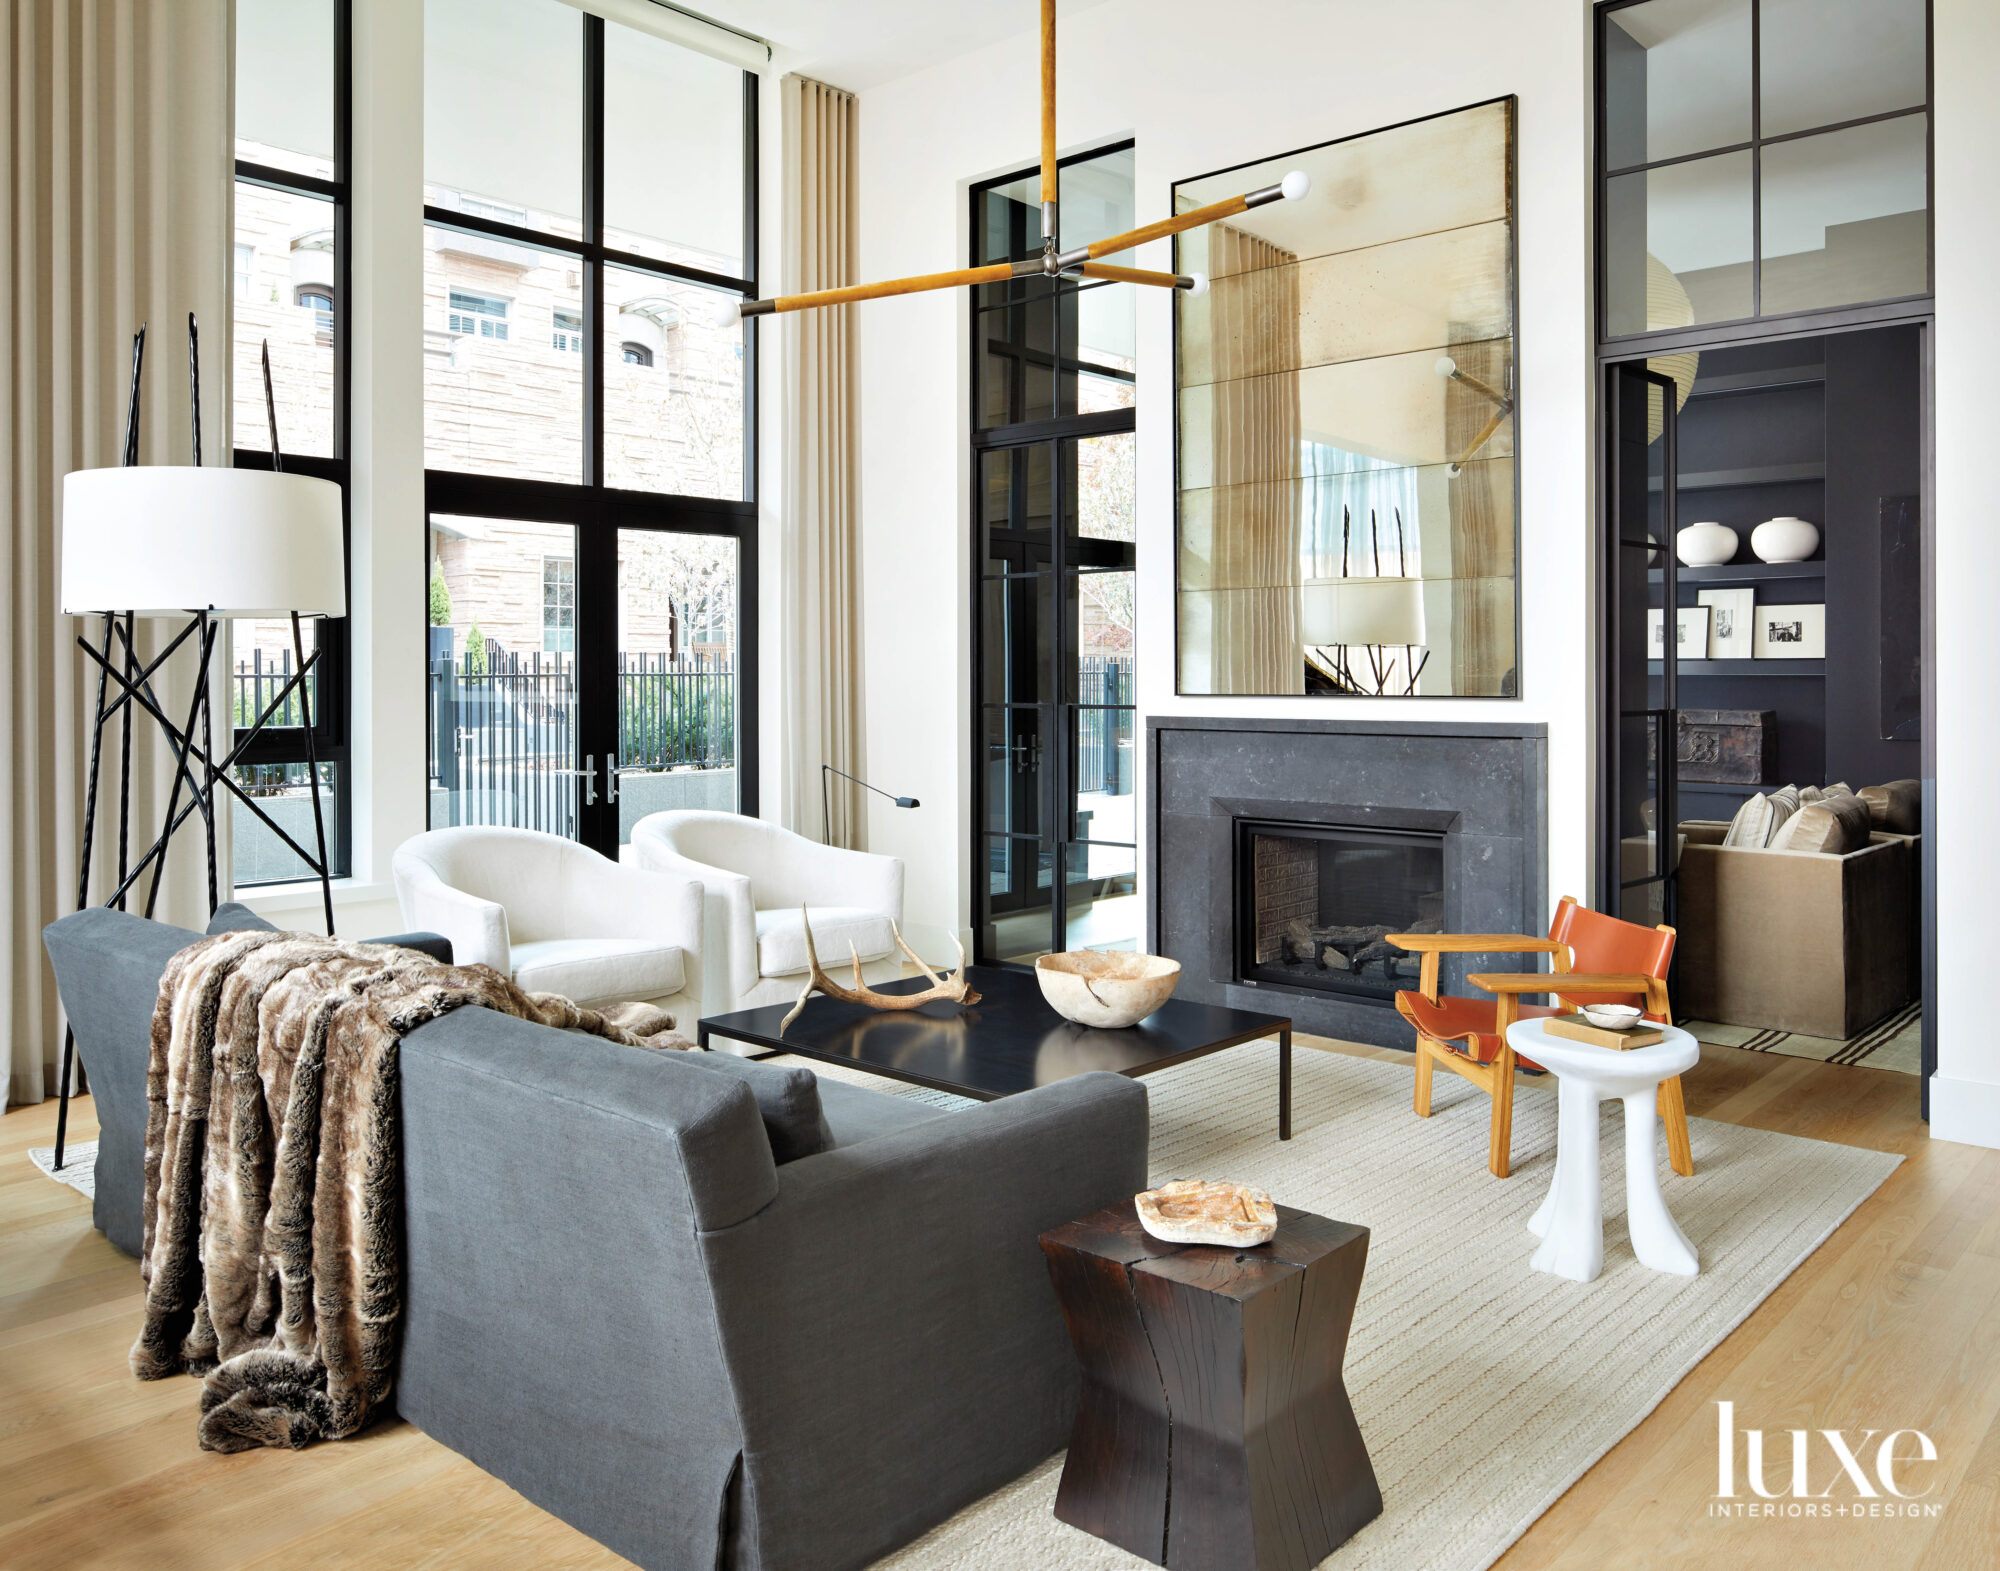 A living room is arranged around a fireplace composed of black stone and mirrored panels.